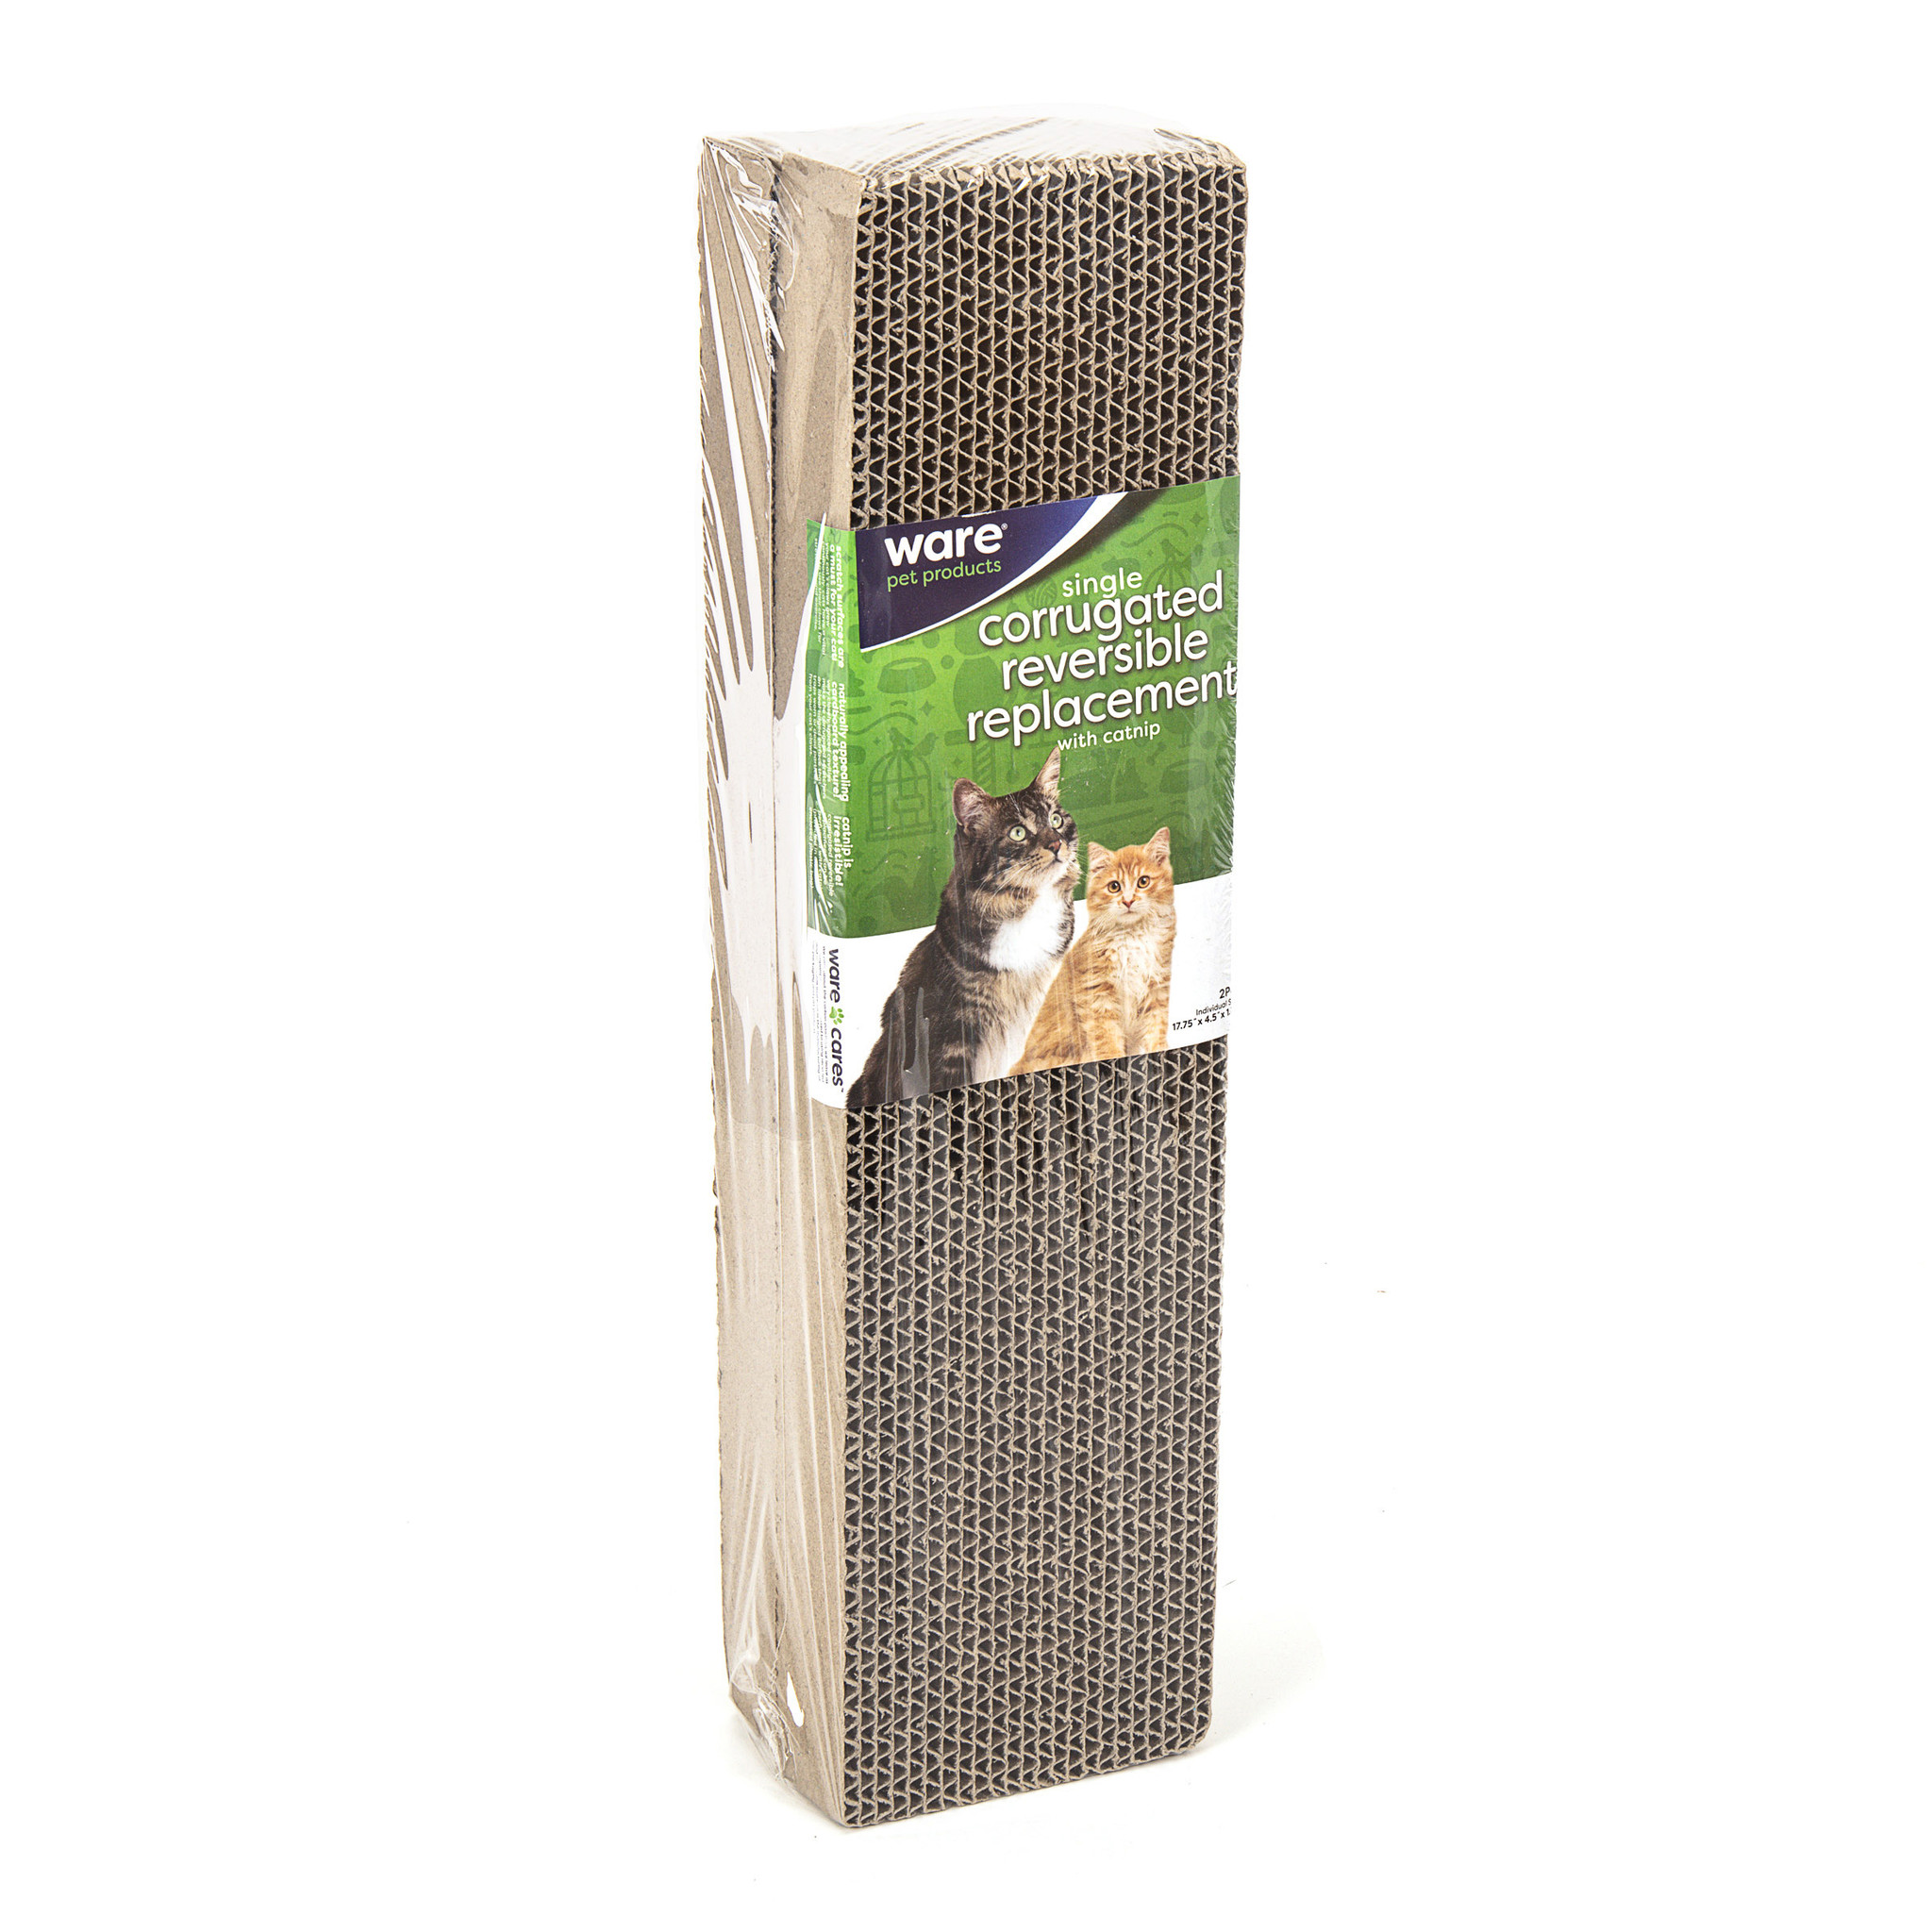 Ware Ware Replacement Scratcher 2 Pack